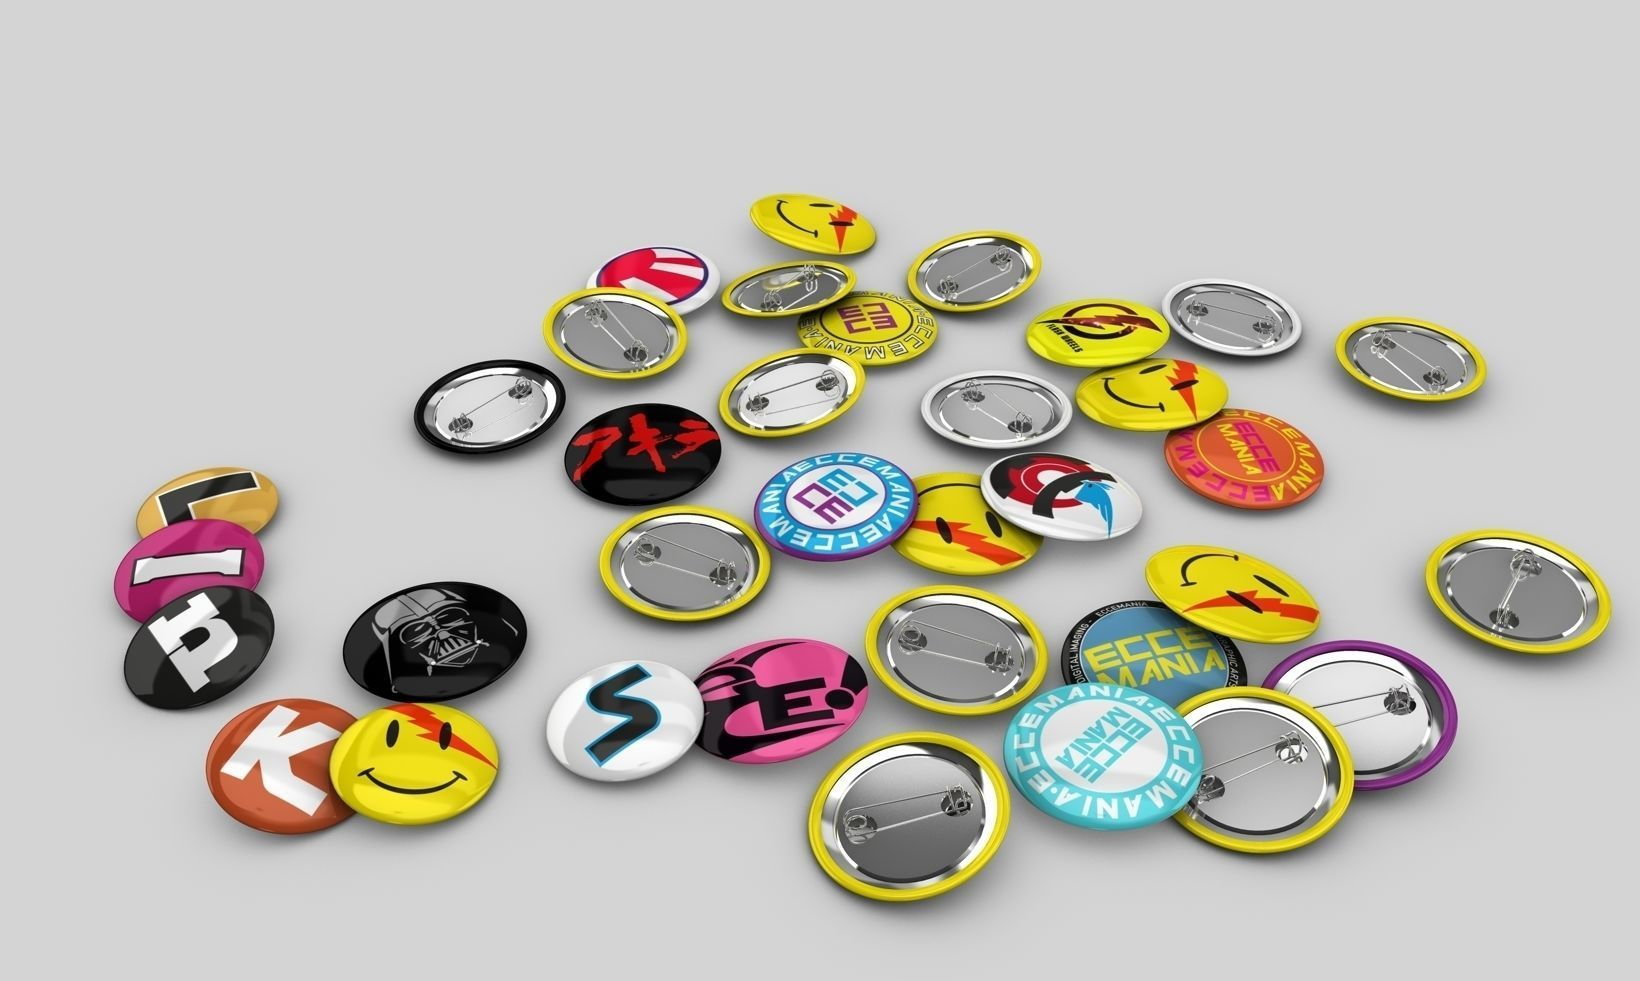 Pin Buttons Market 2019: Growth, Trends, Demand, Share, Analysis and Forecast